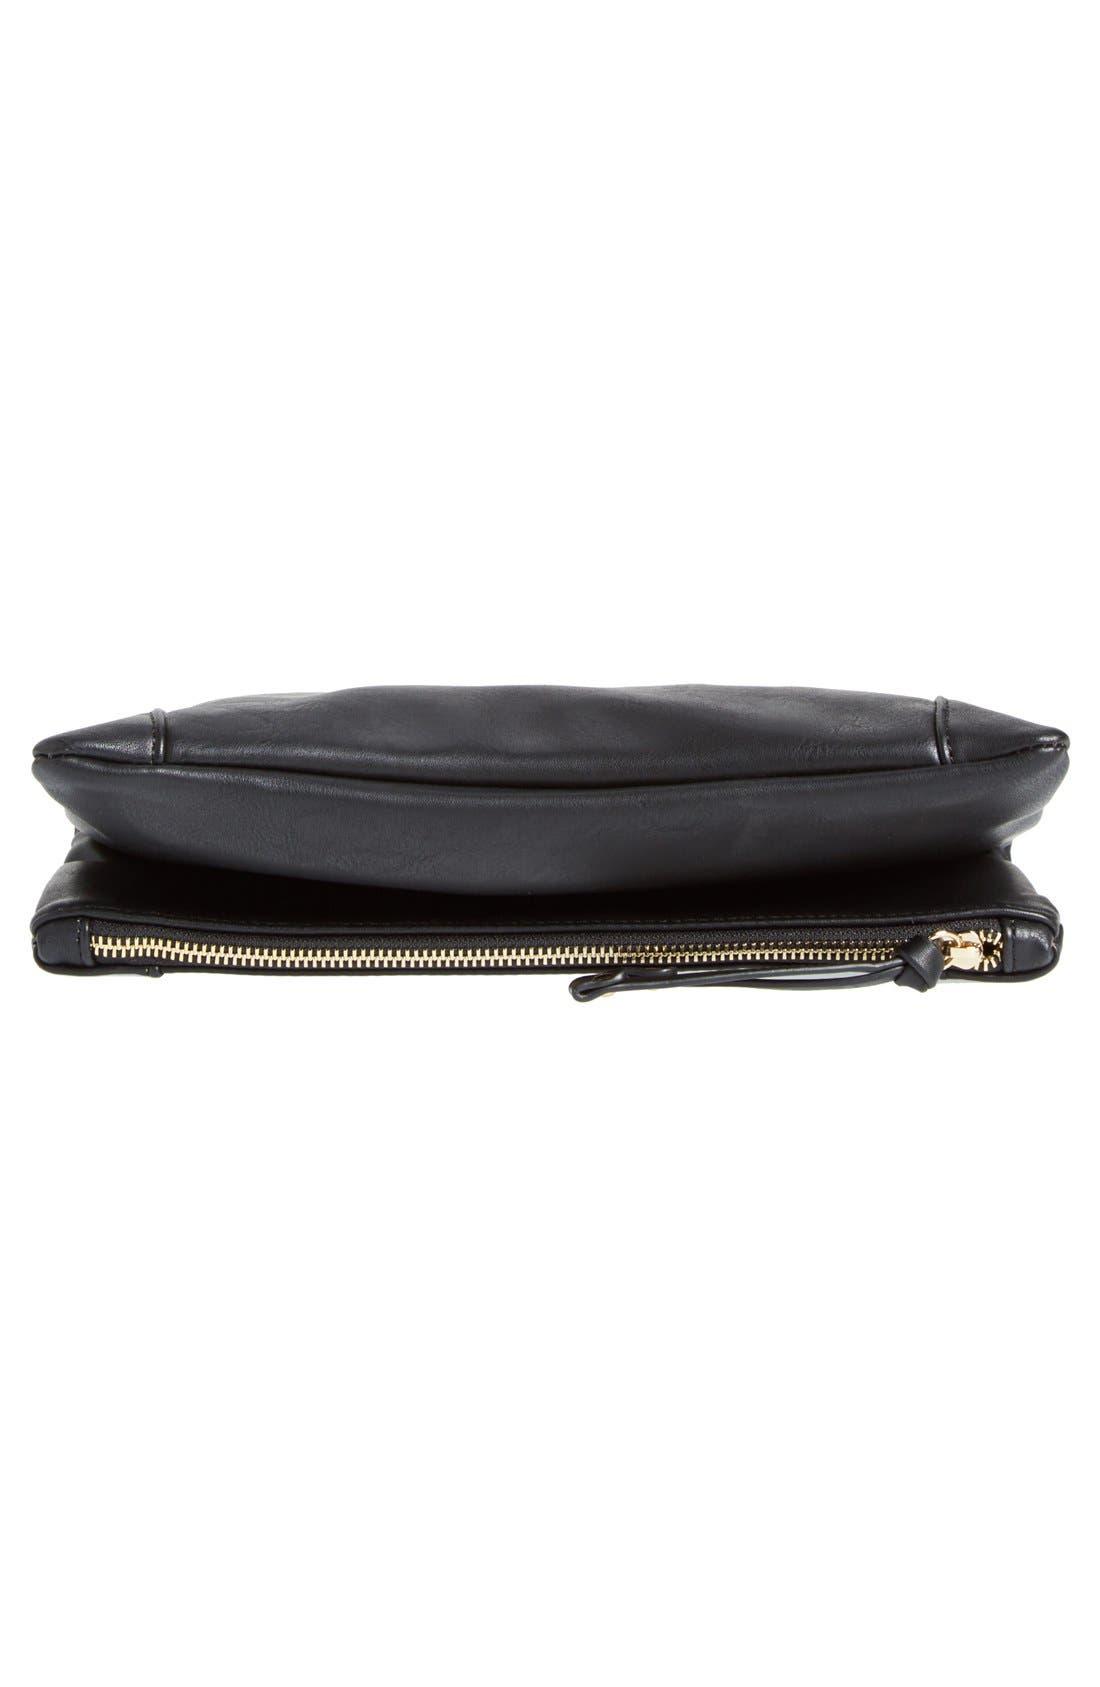 SOLE SOCIETY, Marlena Faux Leather Foldover Clutch, Alternate thumbnail 7, color, JET BLACK